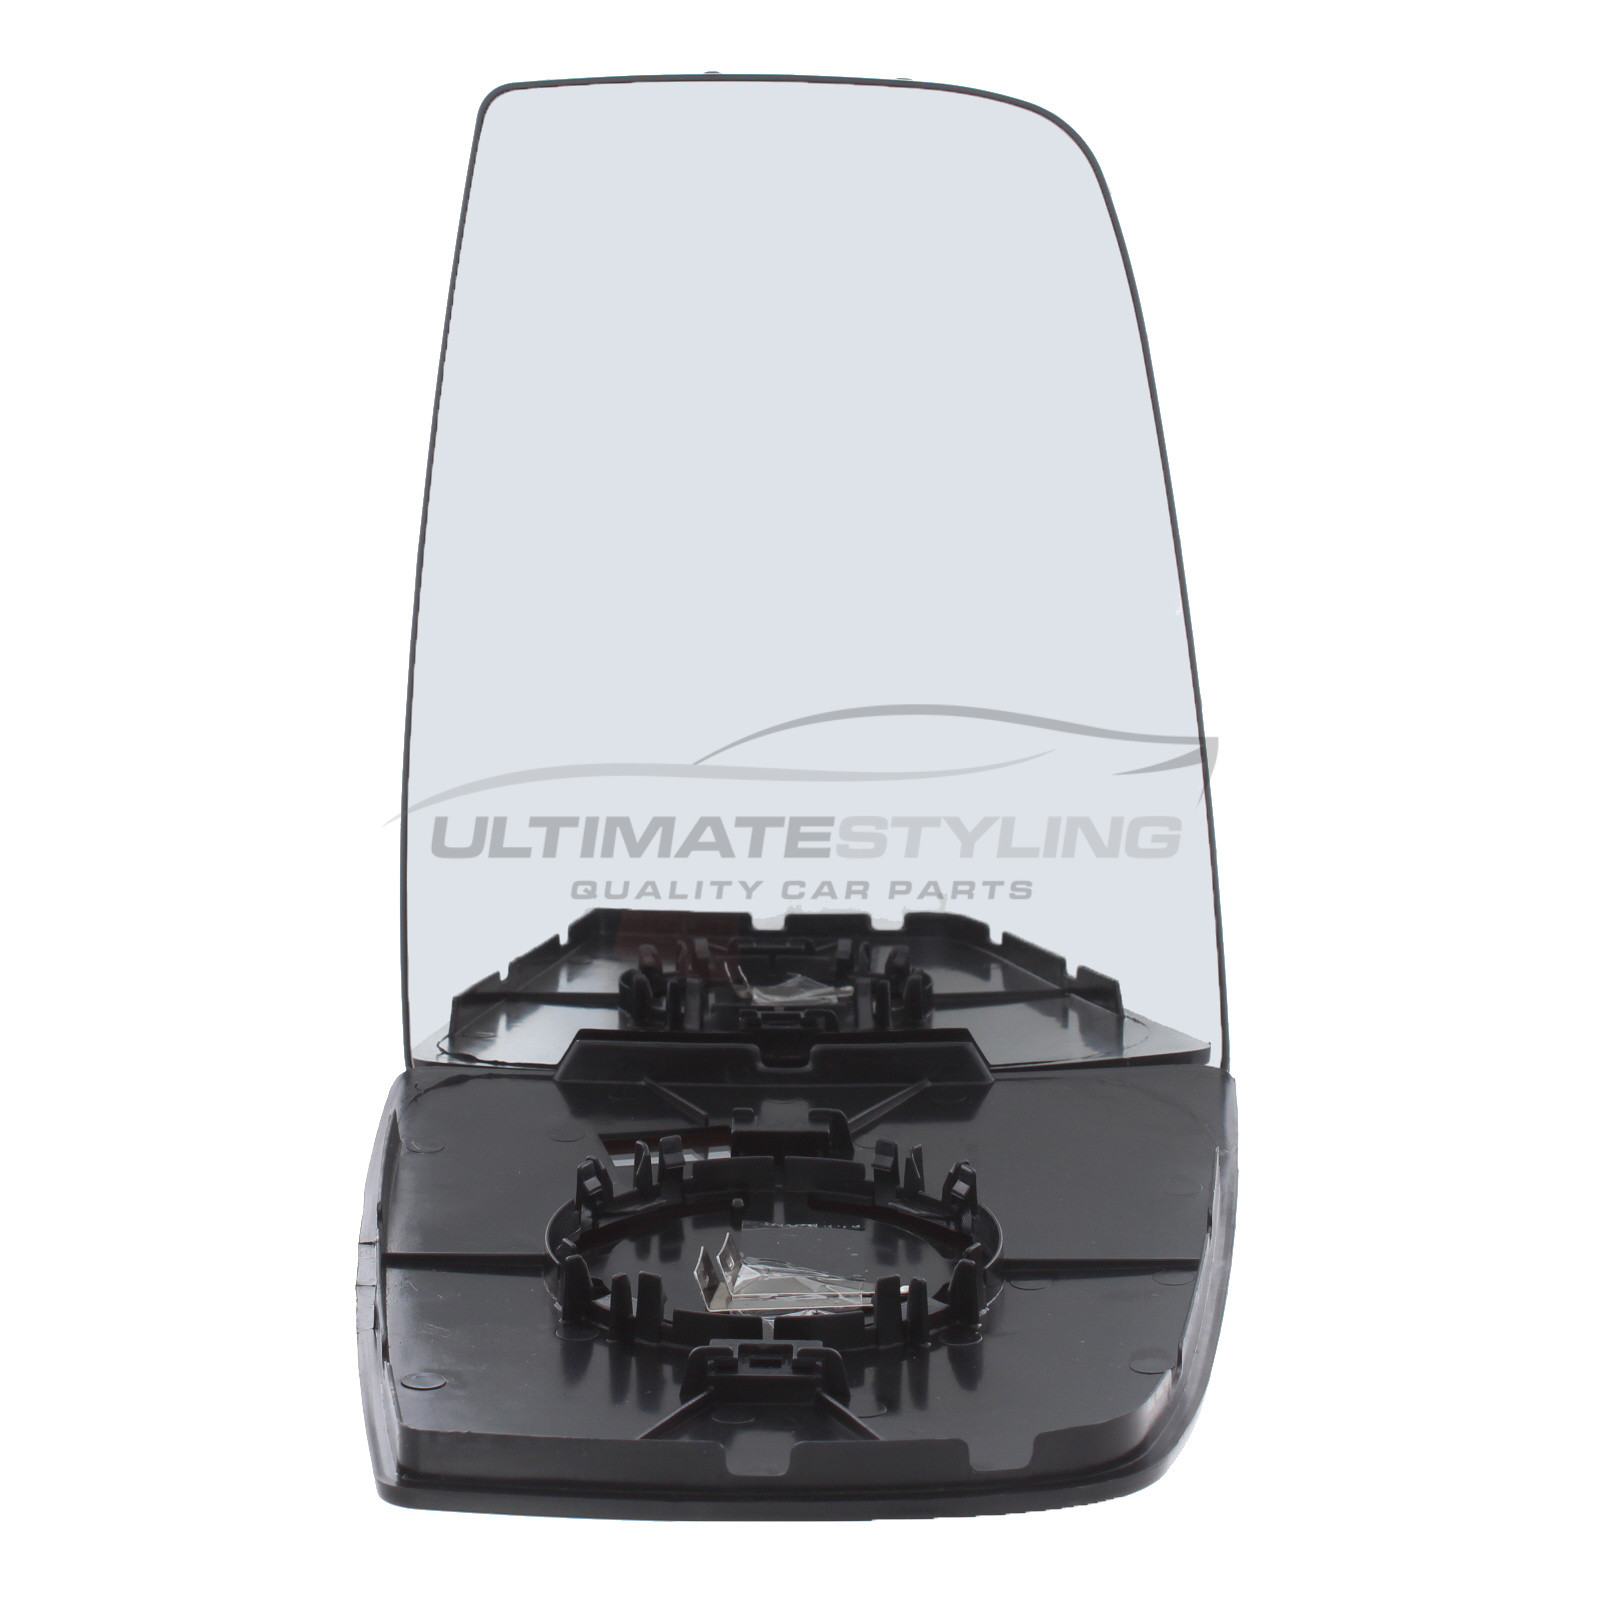 Ultimate Styling Aftermarket Replacement Heated Convex Chrome Wing Mirror Glass Passenger Side LH